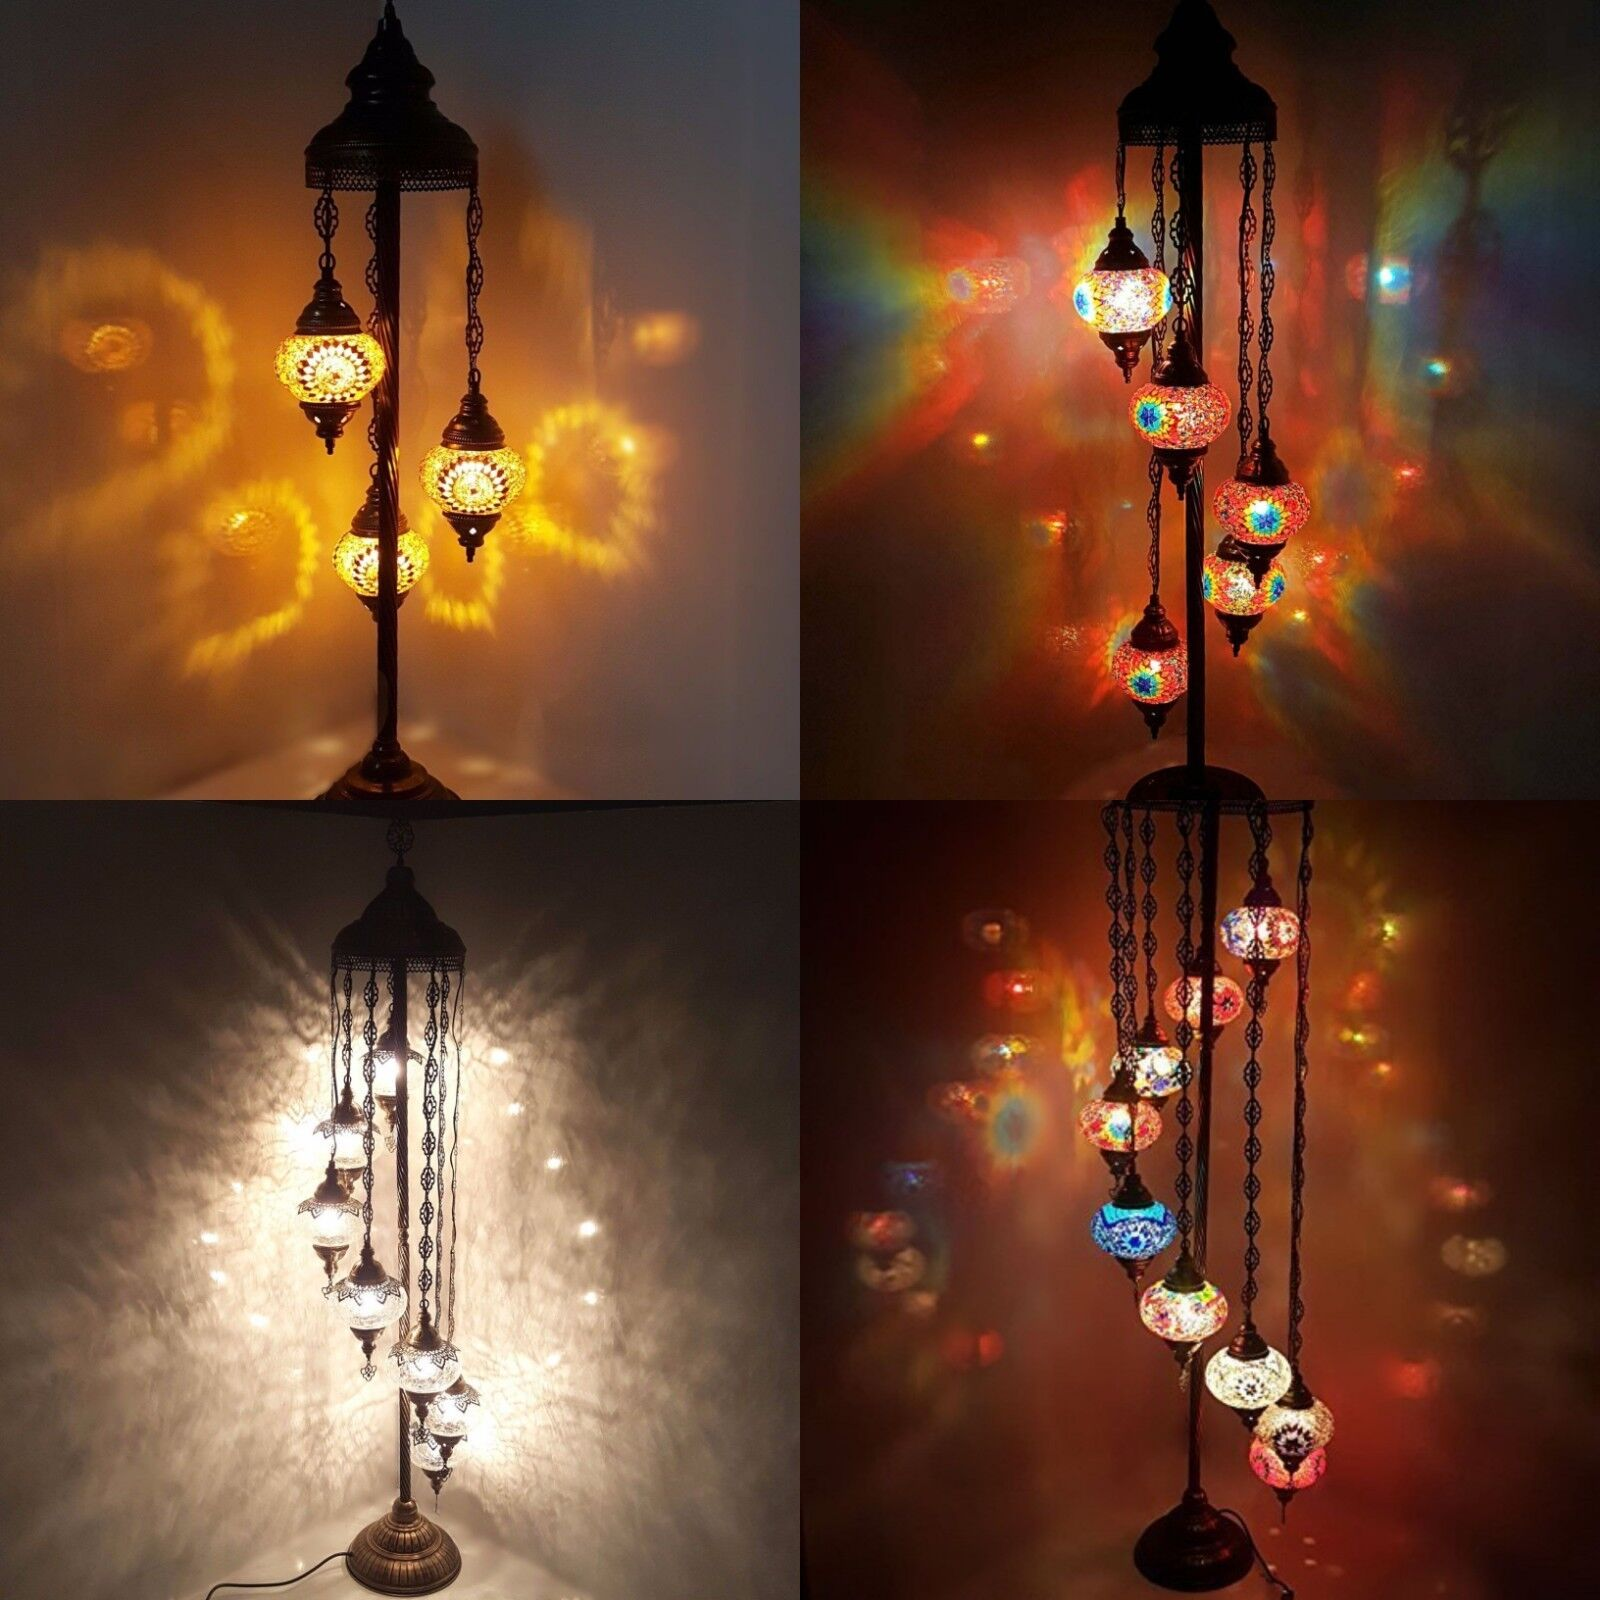 7 Ball Turkish Water Drop Style Mosaic Chandelier Multi color